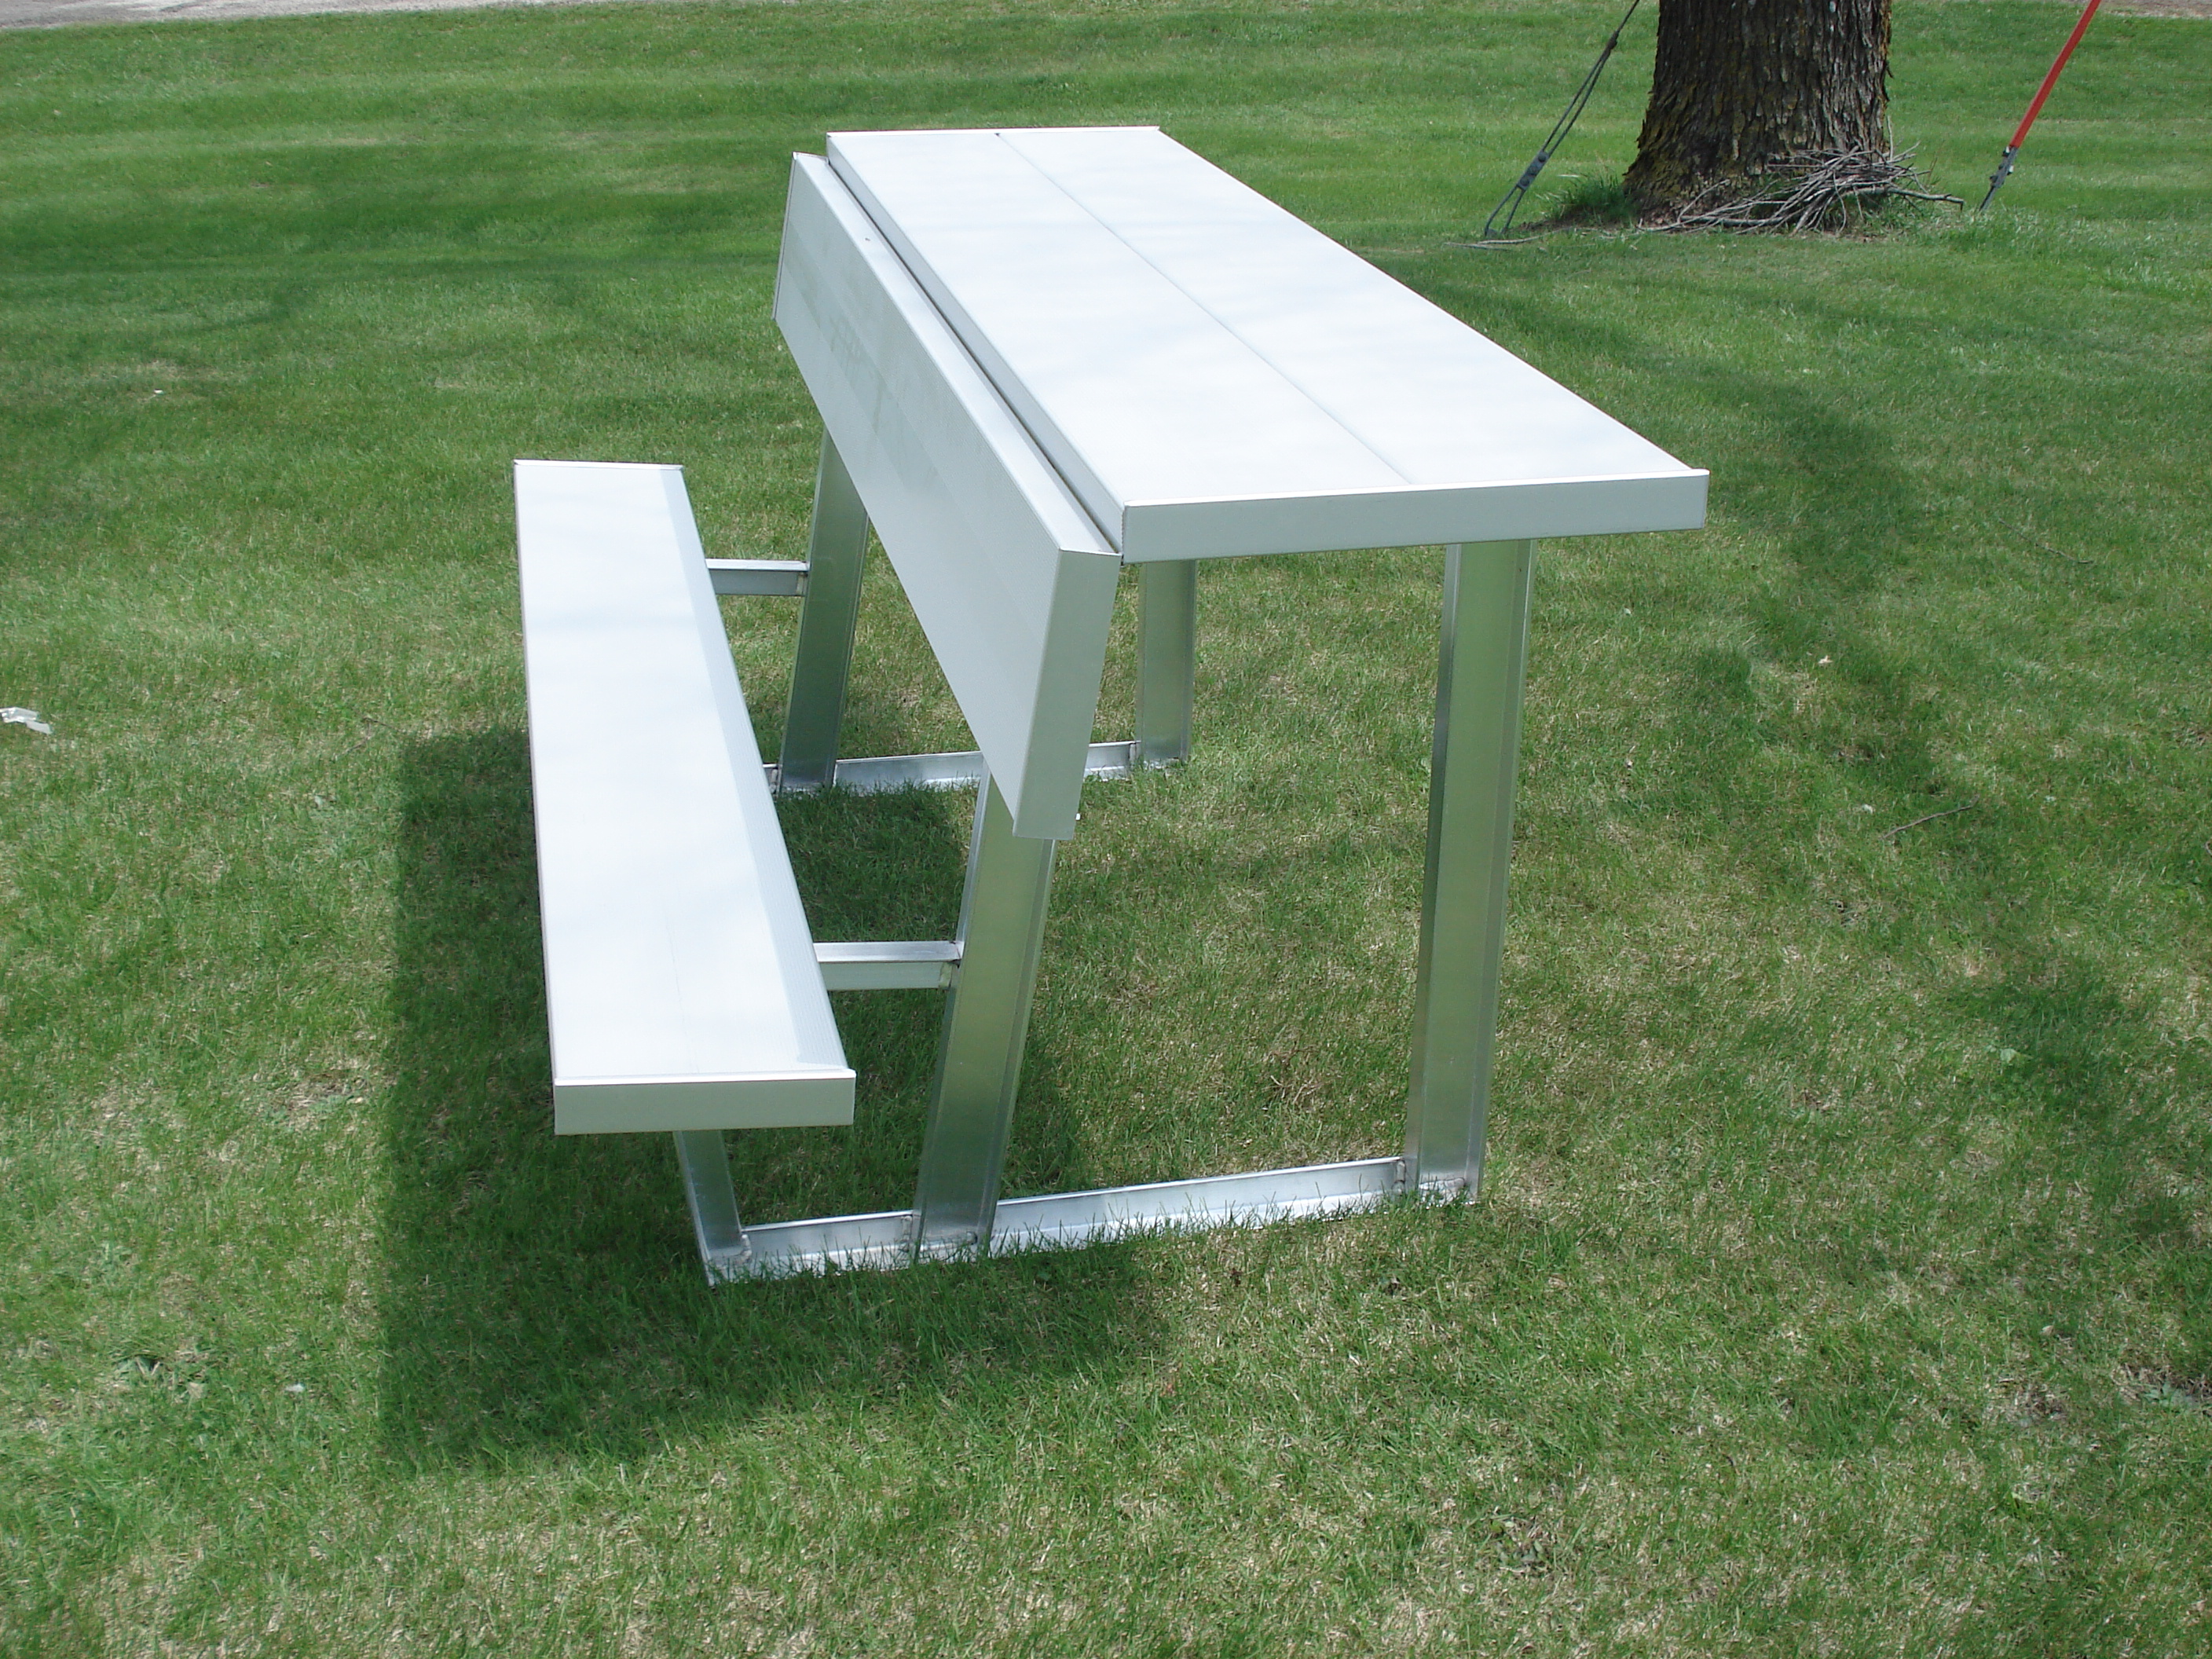 Brilliant American Aluminum Seating Inc Dugout Benches Ocoug Best Dining Table And Chair Ideas Images Ocougorg